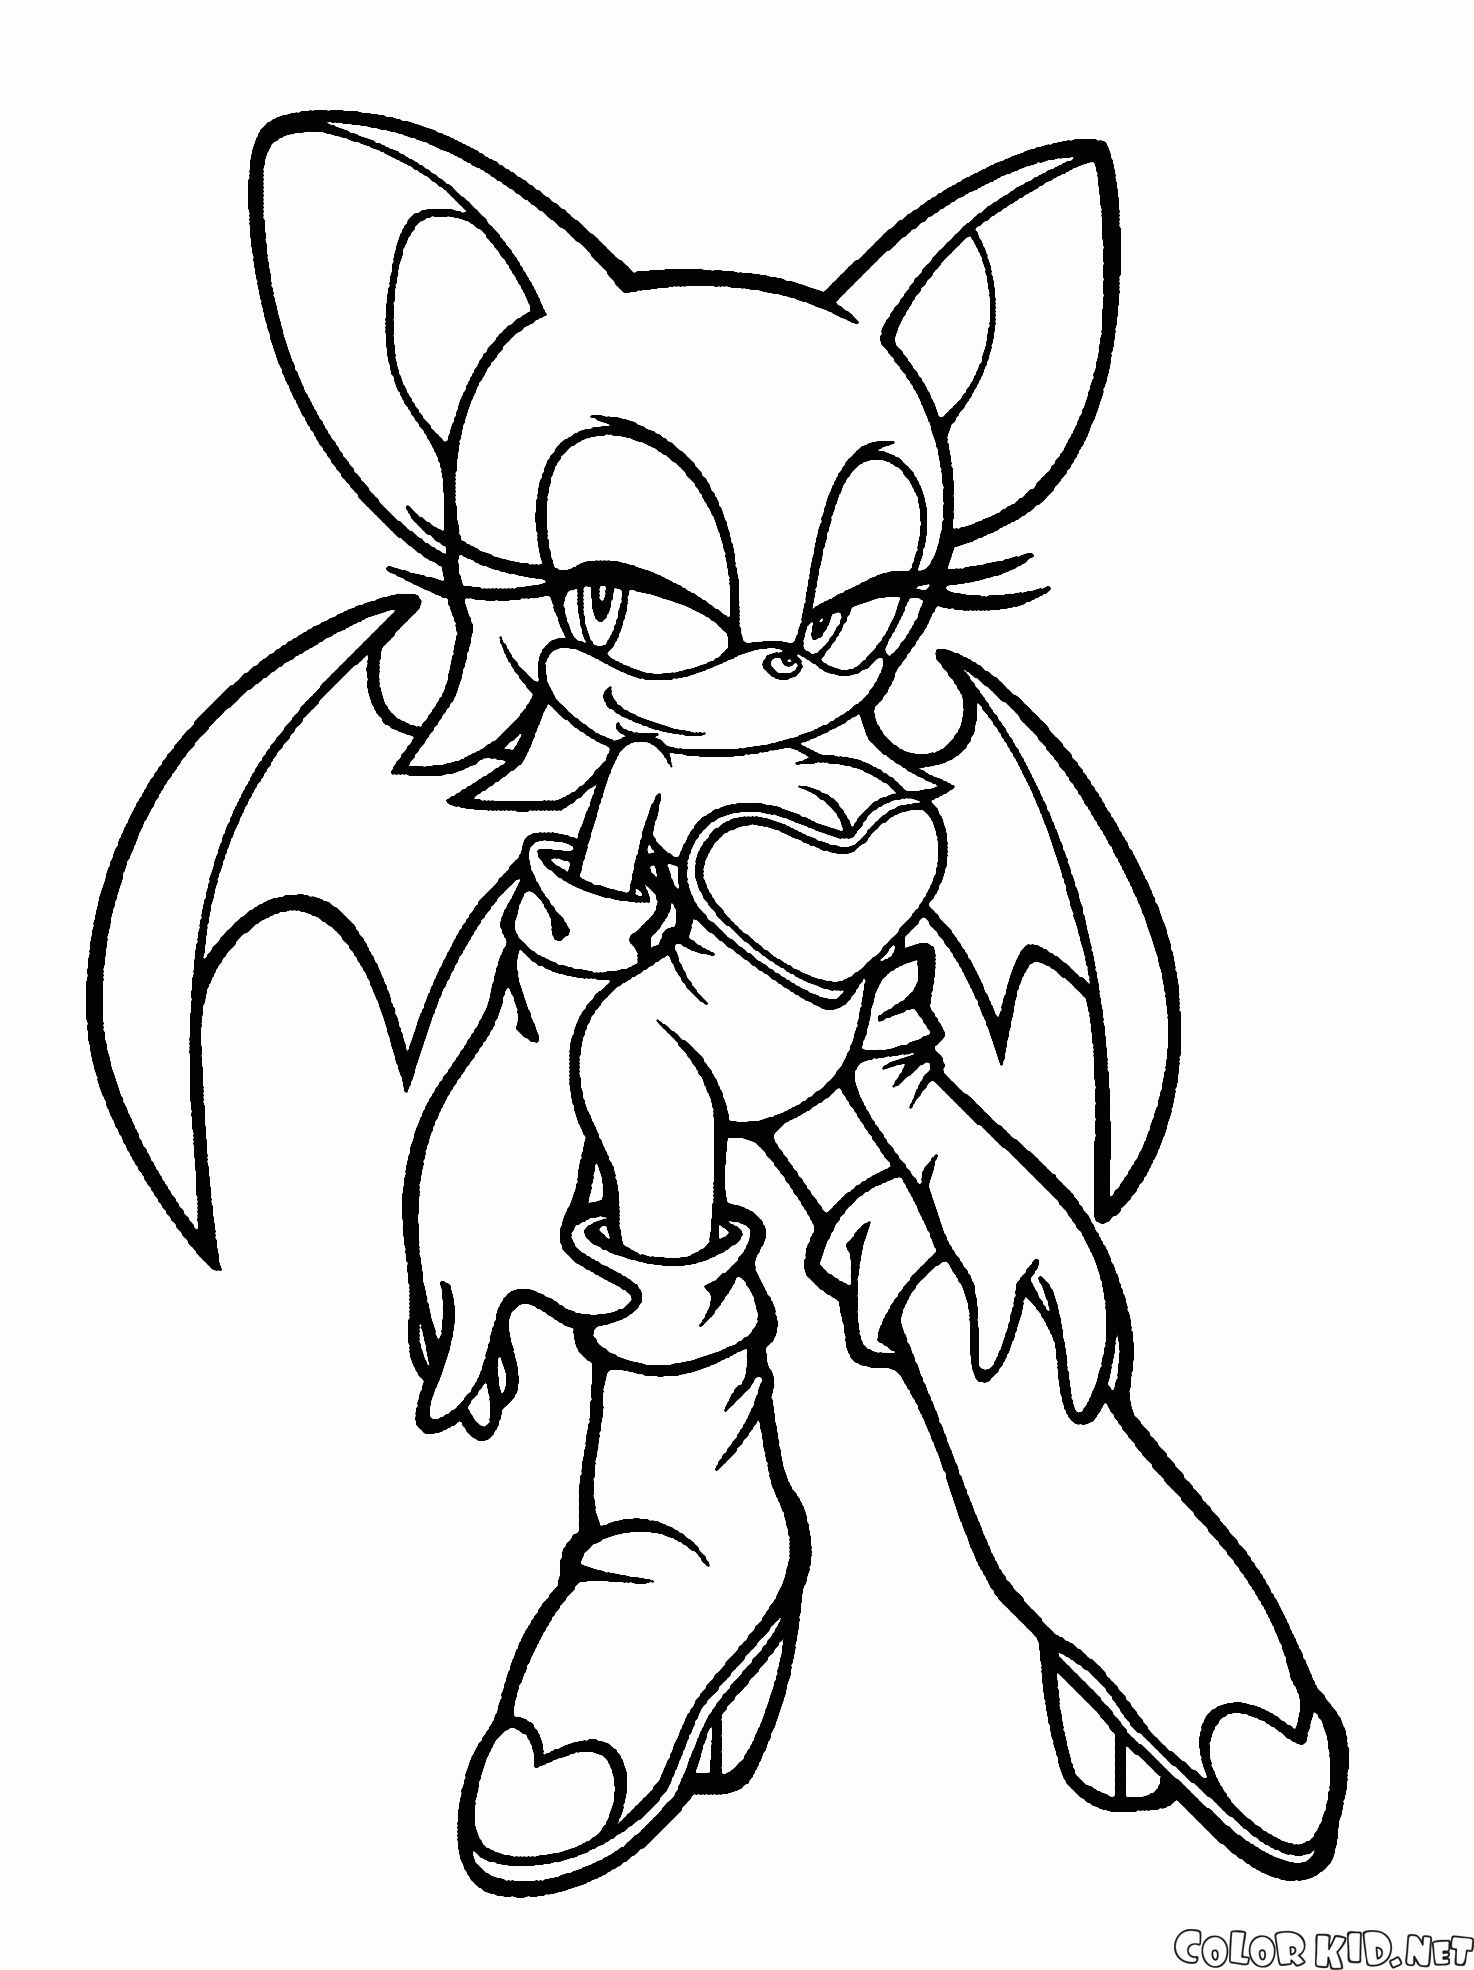 Sonic Rouge Coloring Pages Download In 2020 Bat Coloring Pages Cartoon Coloring Pages Coloring Pages